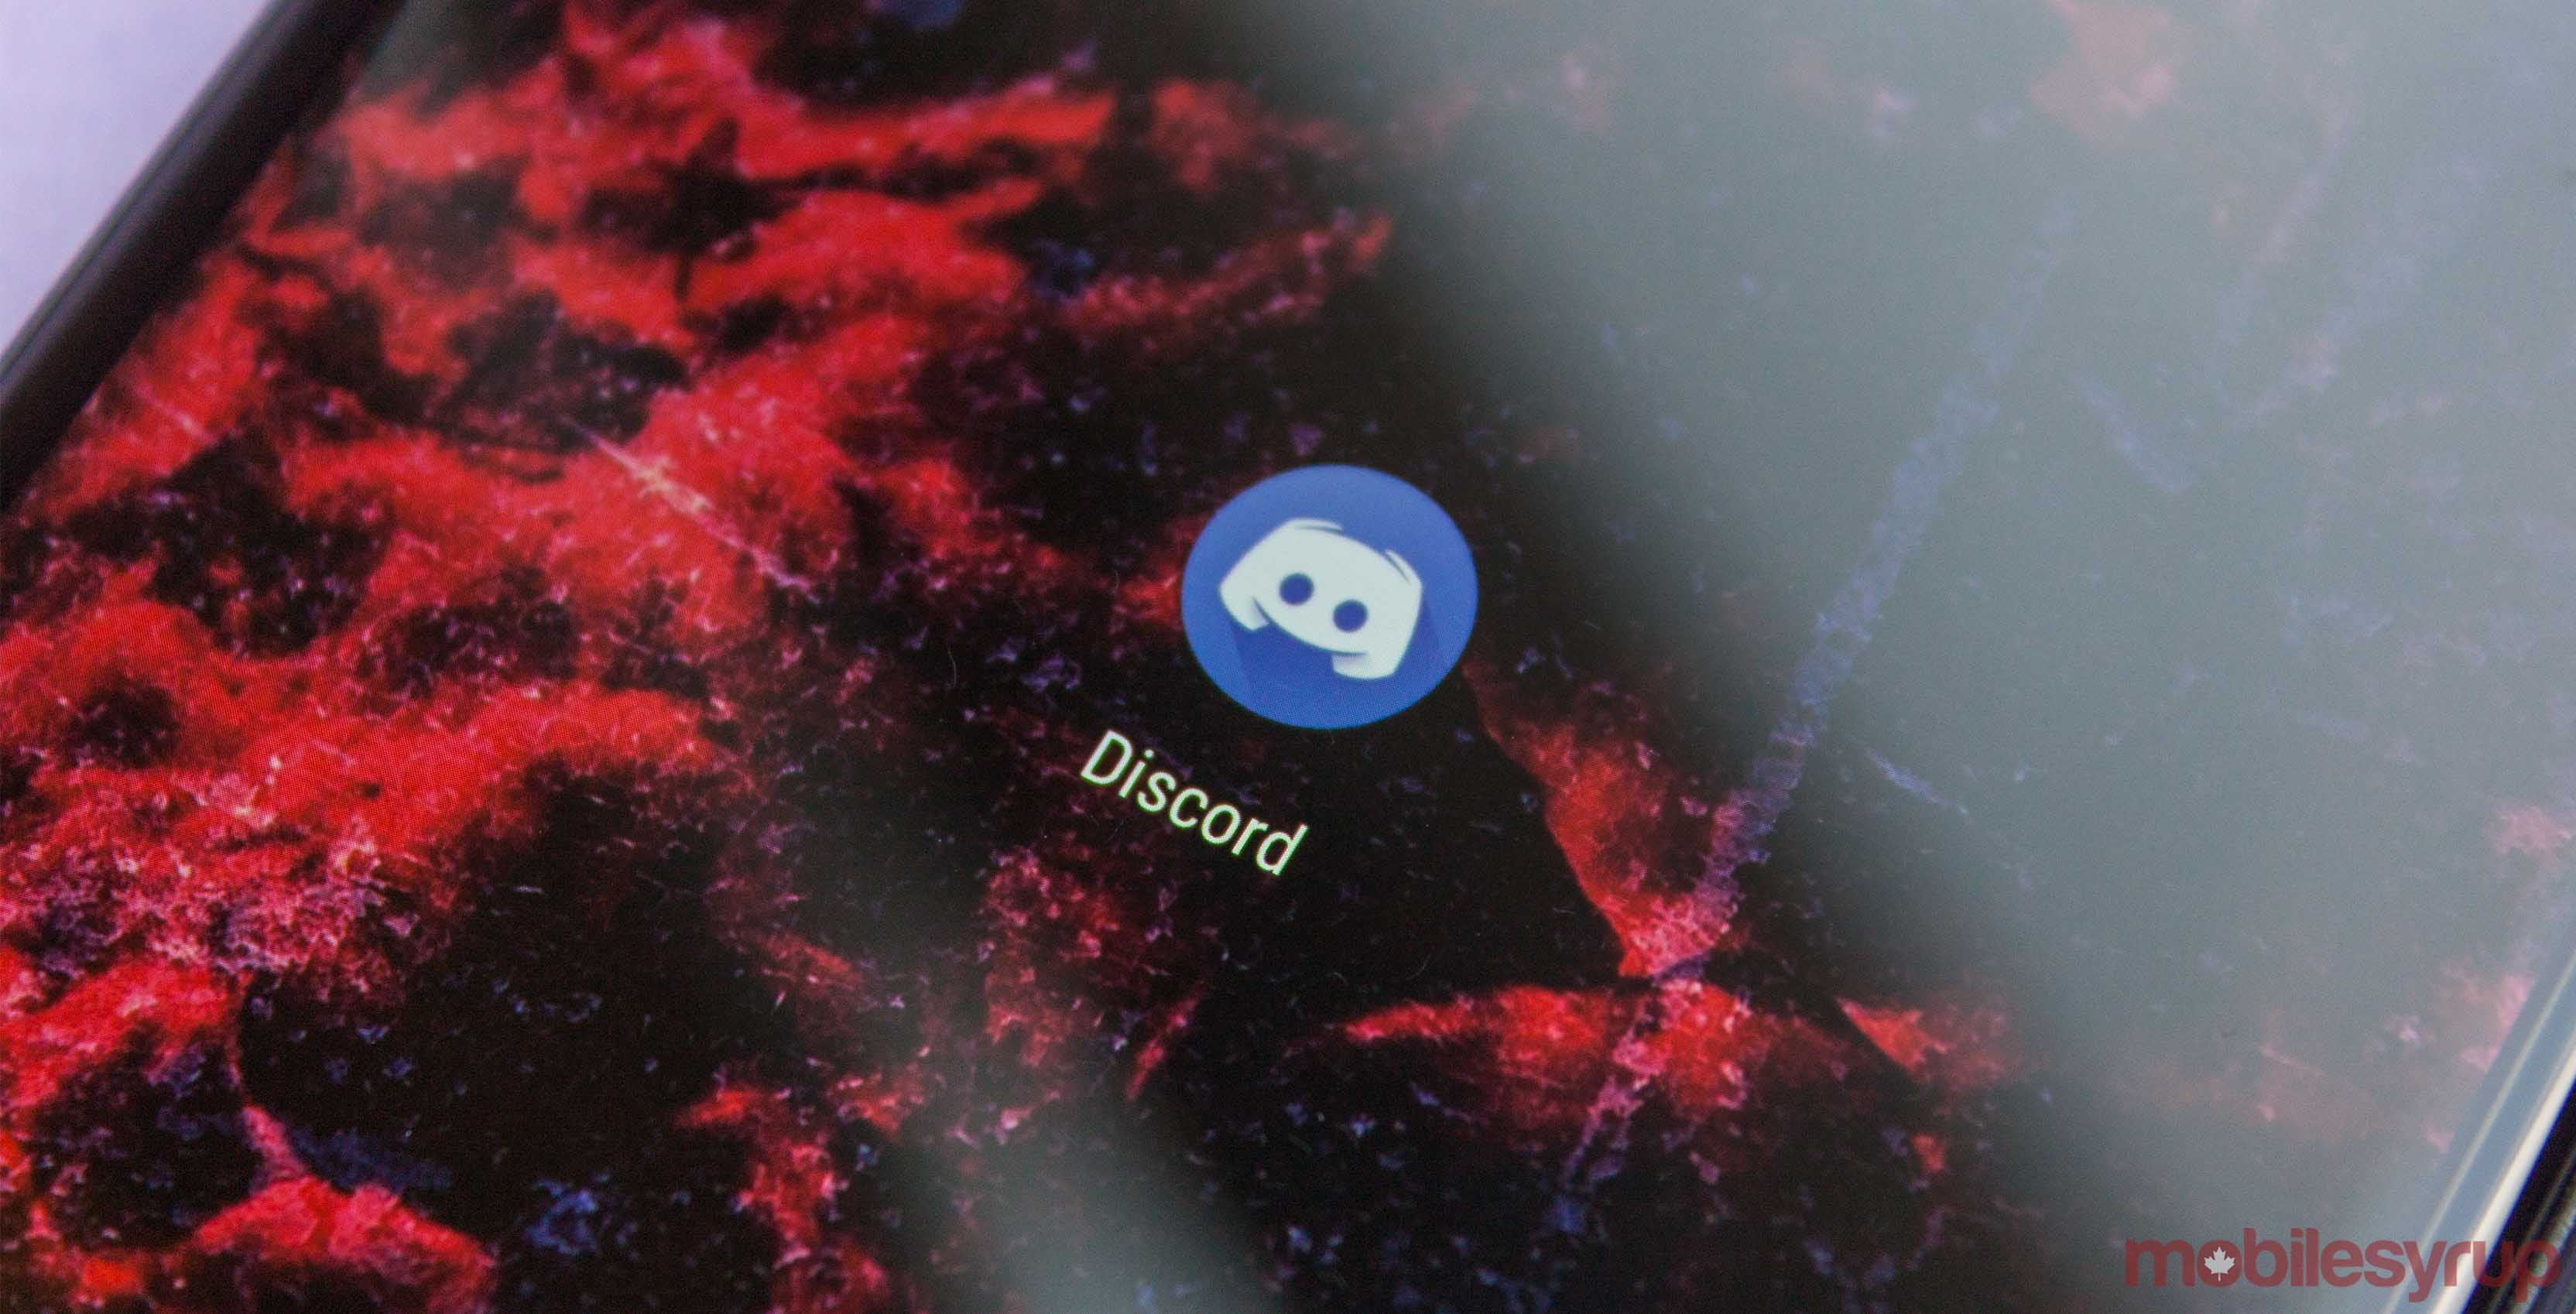 Discord app on Android